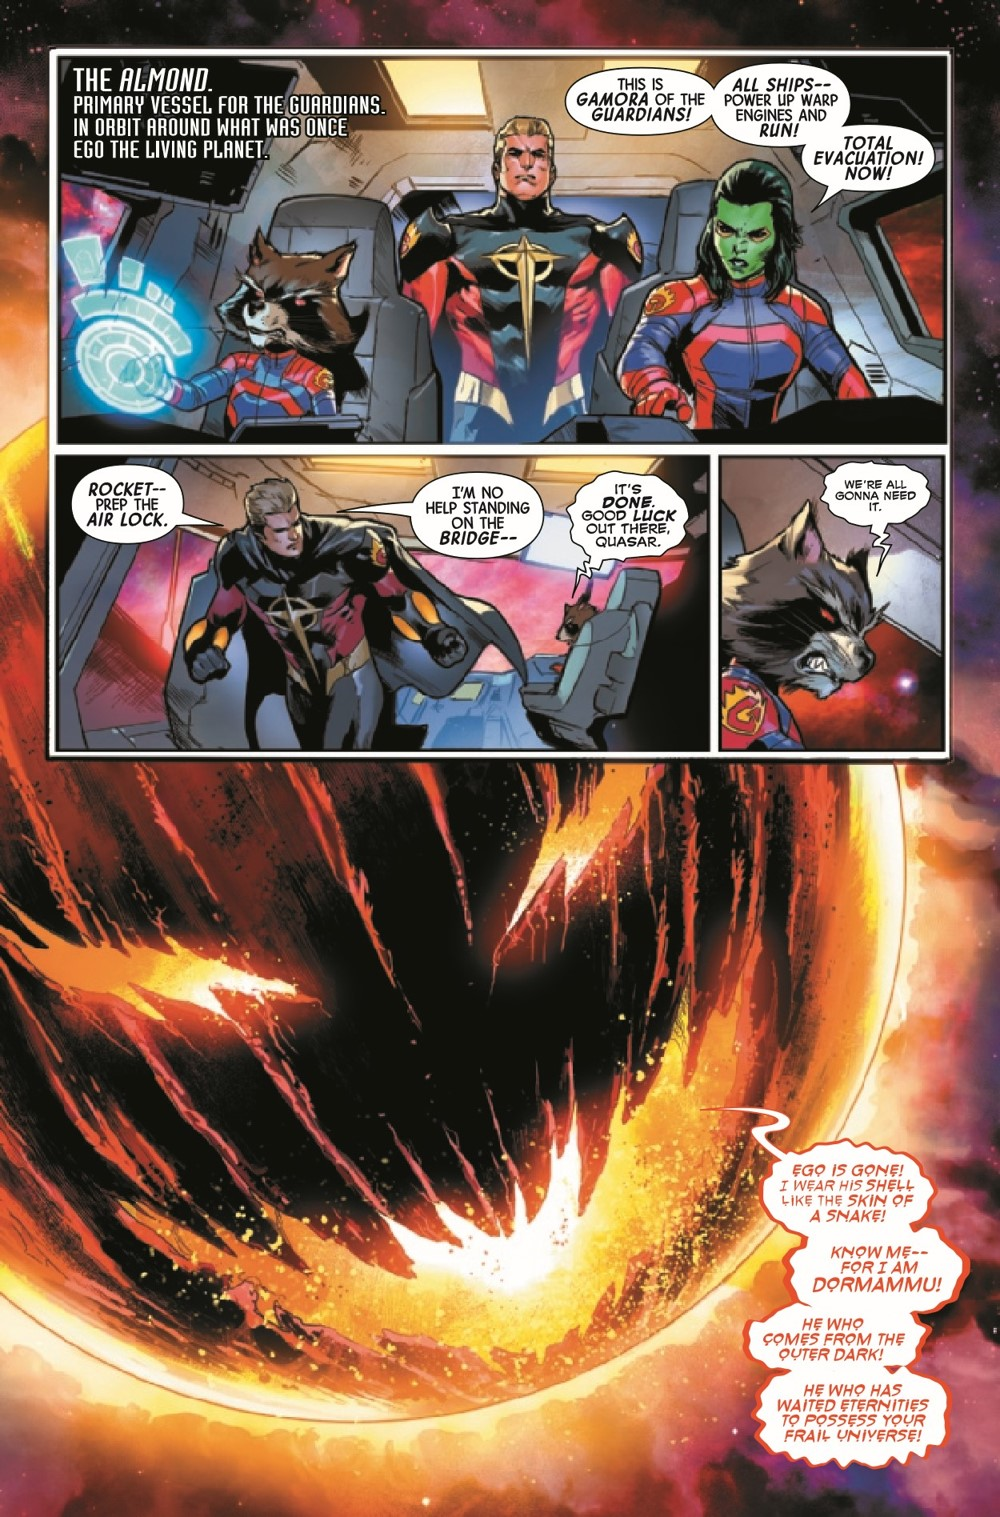 GARGAL2020016_Preview-6 ComicList Previews: GUARDIANS OF THE GALAXY #16